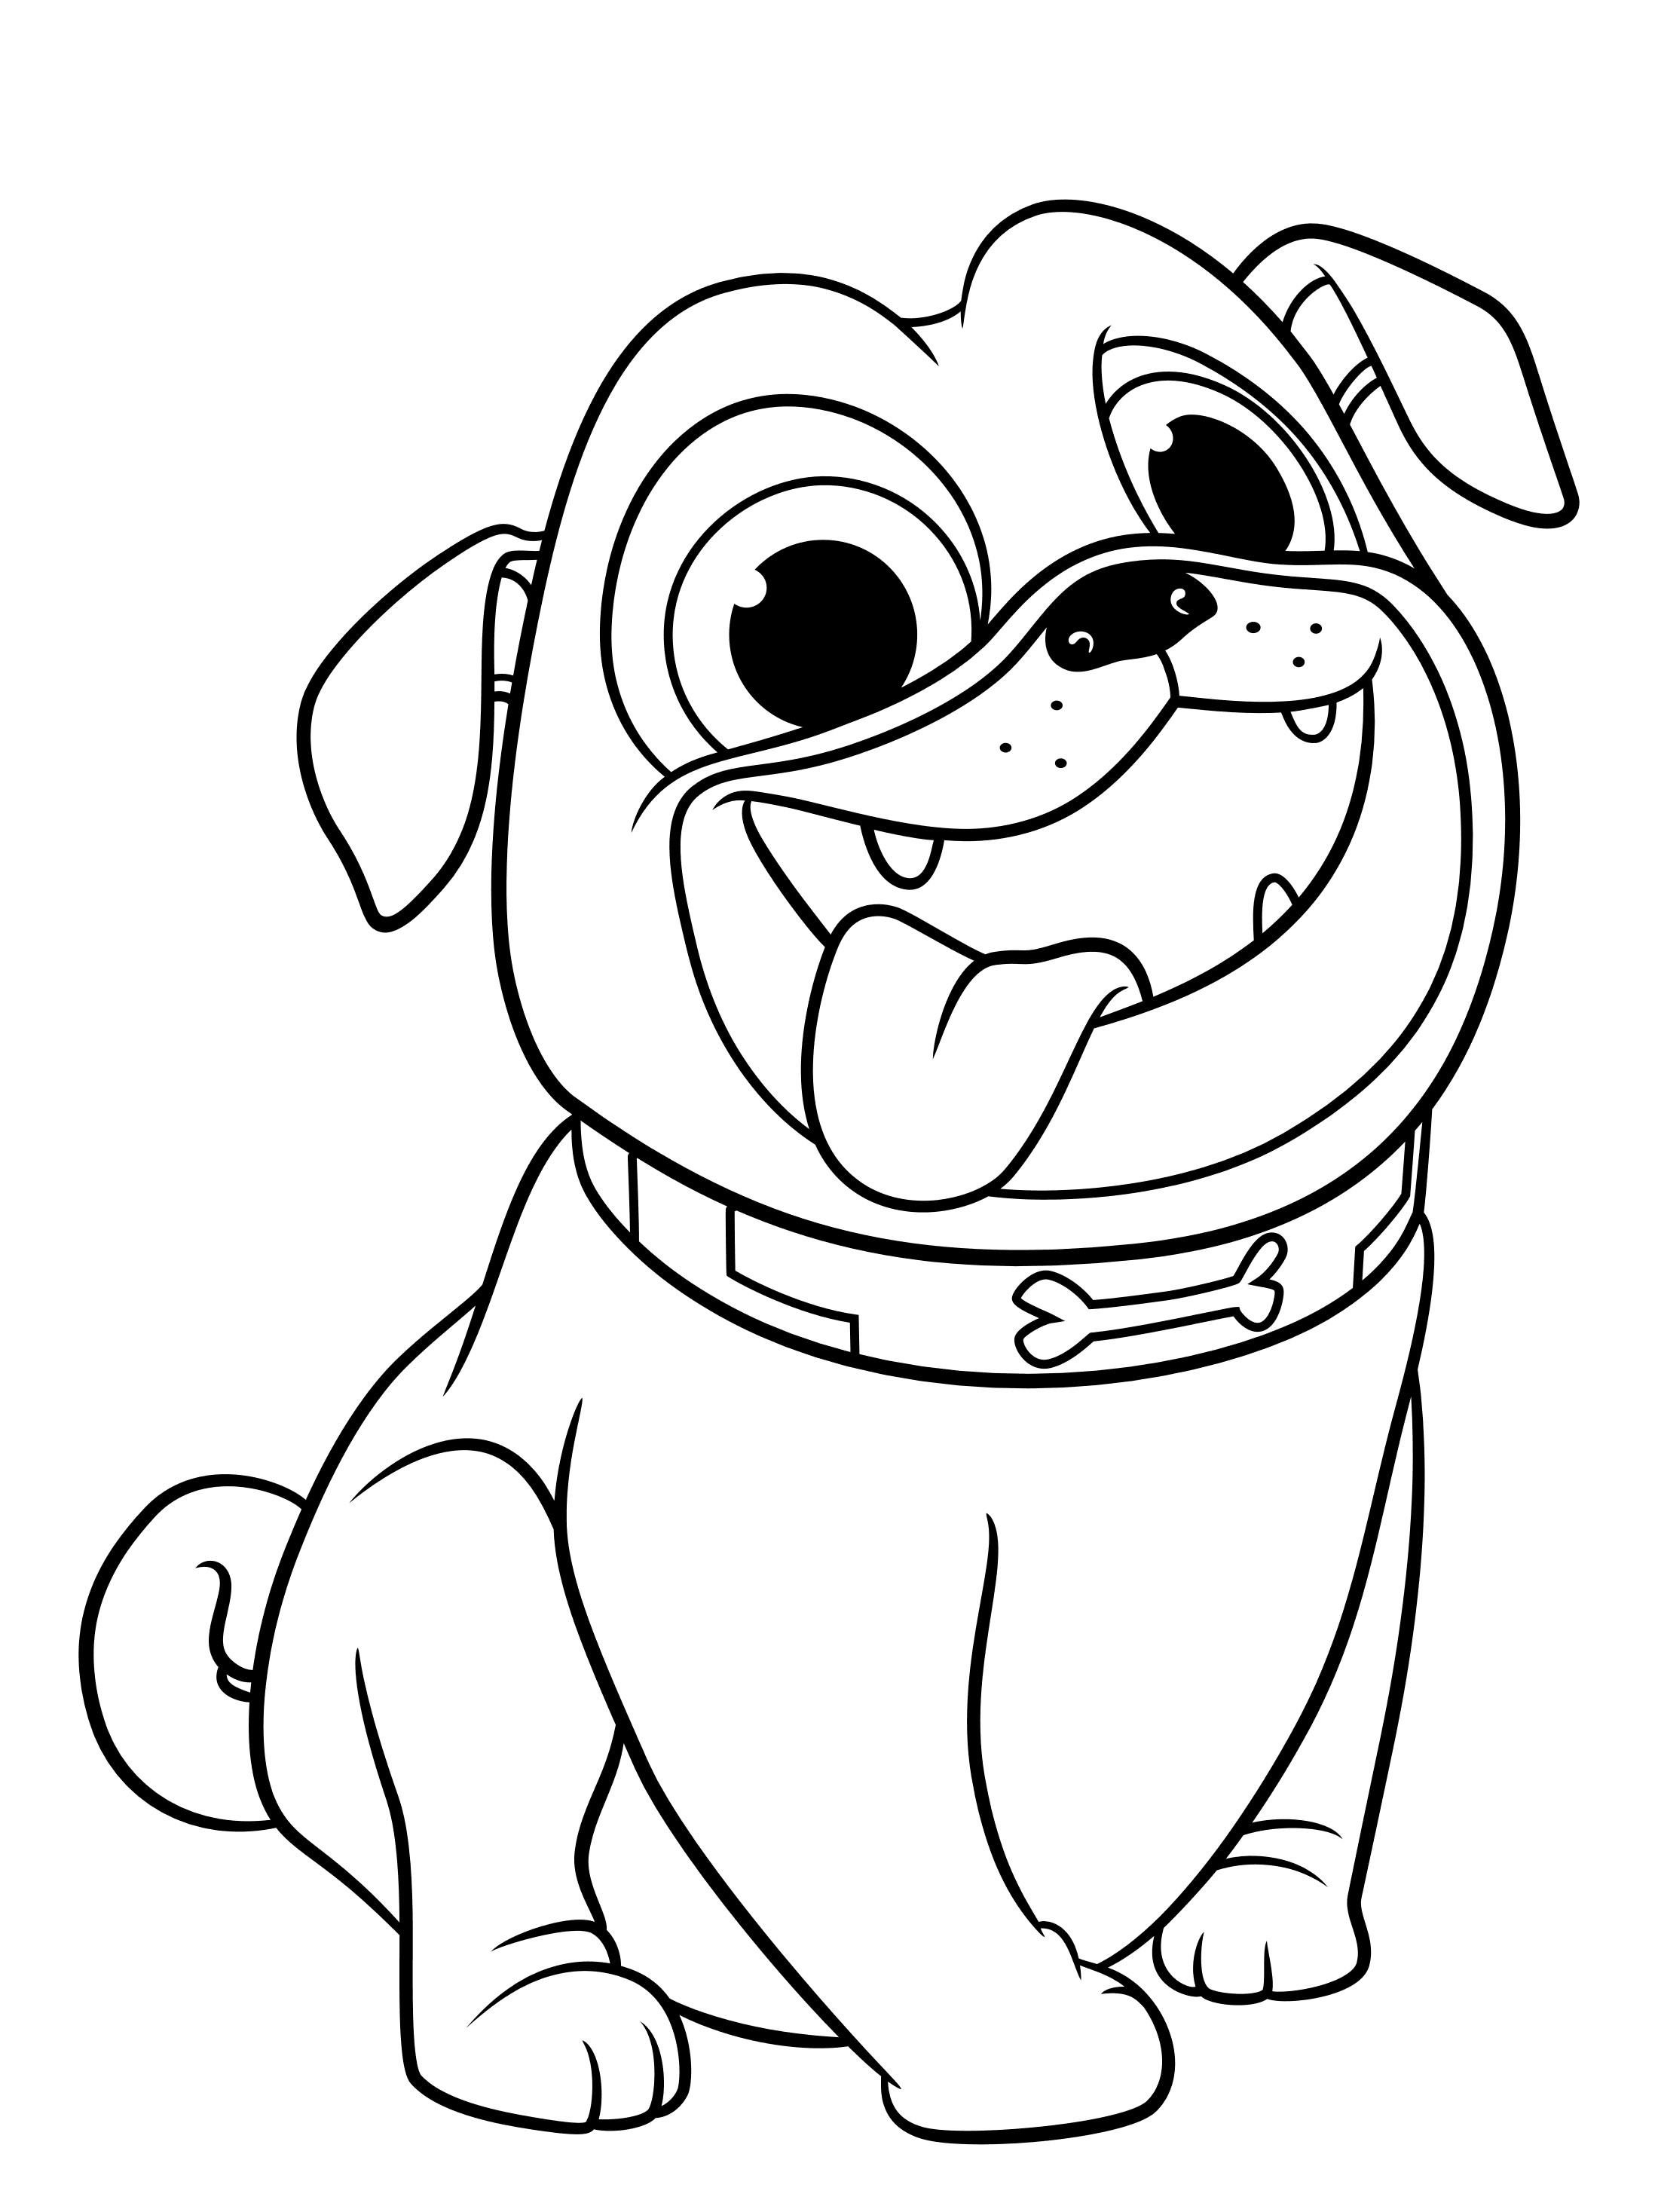 dog coloring in pug dog coloring pages coloring home dog in coloring